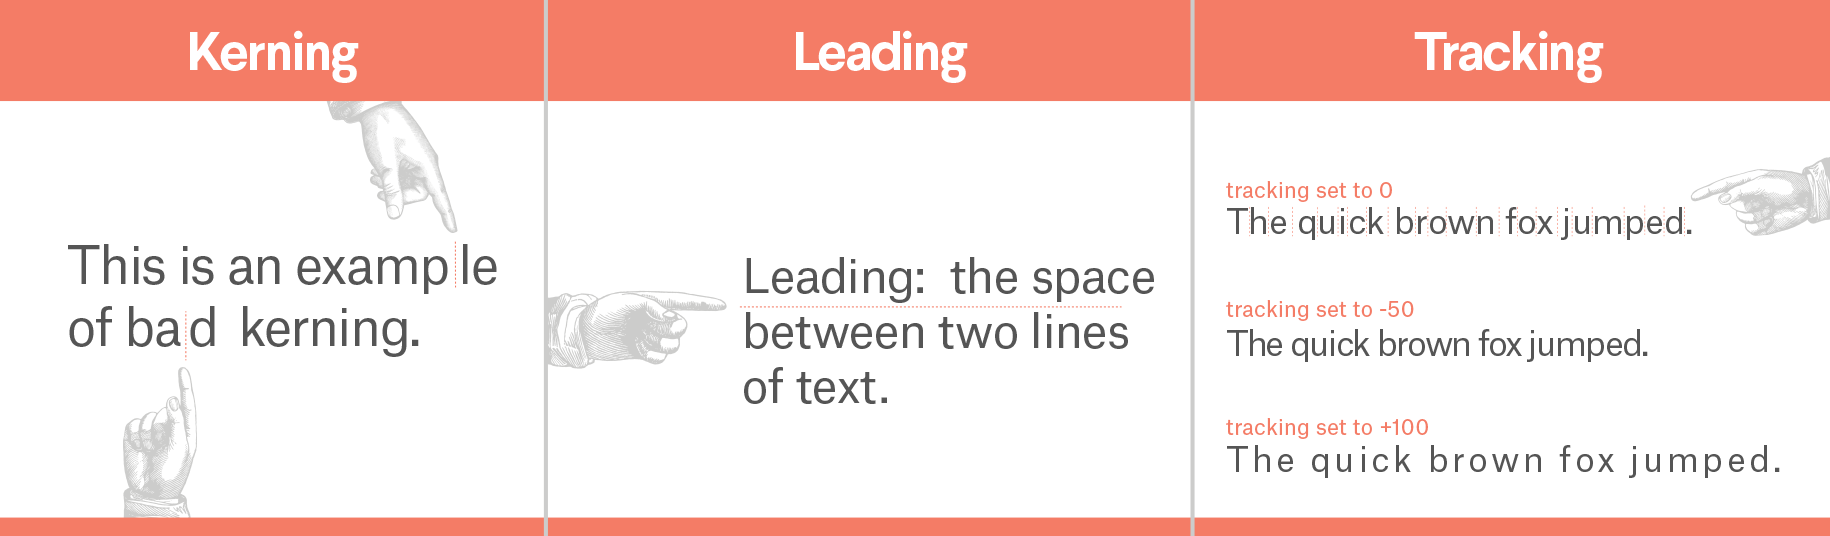 kerning leading tracking